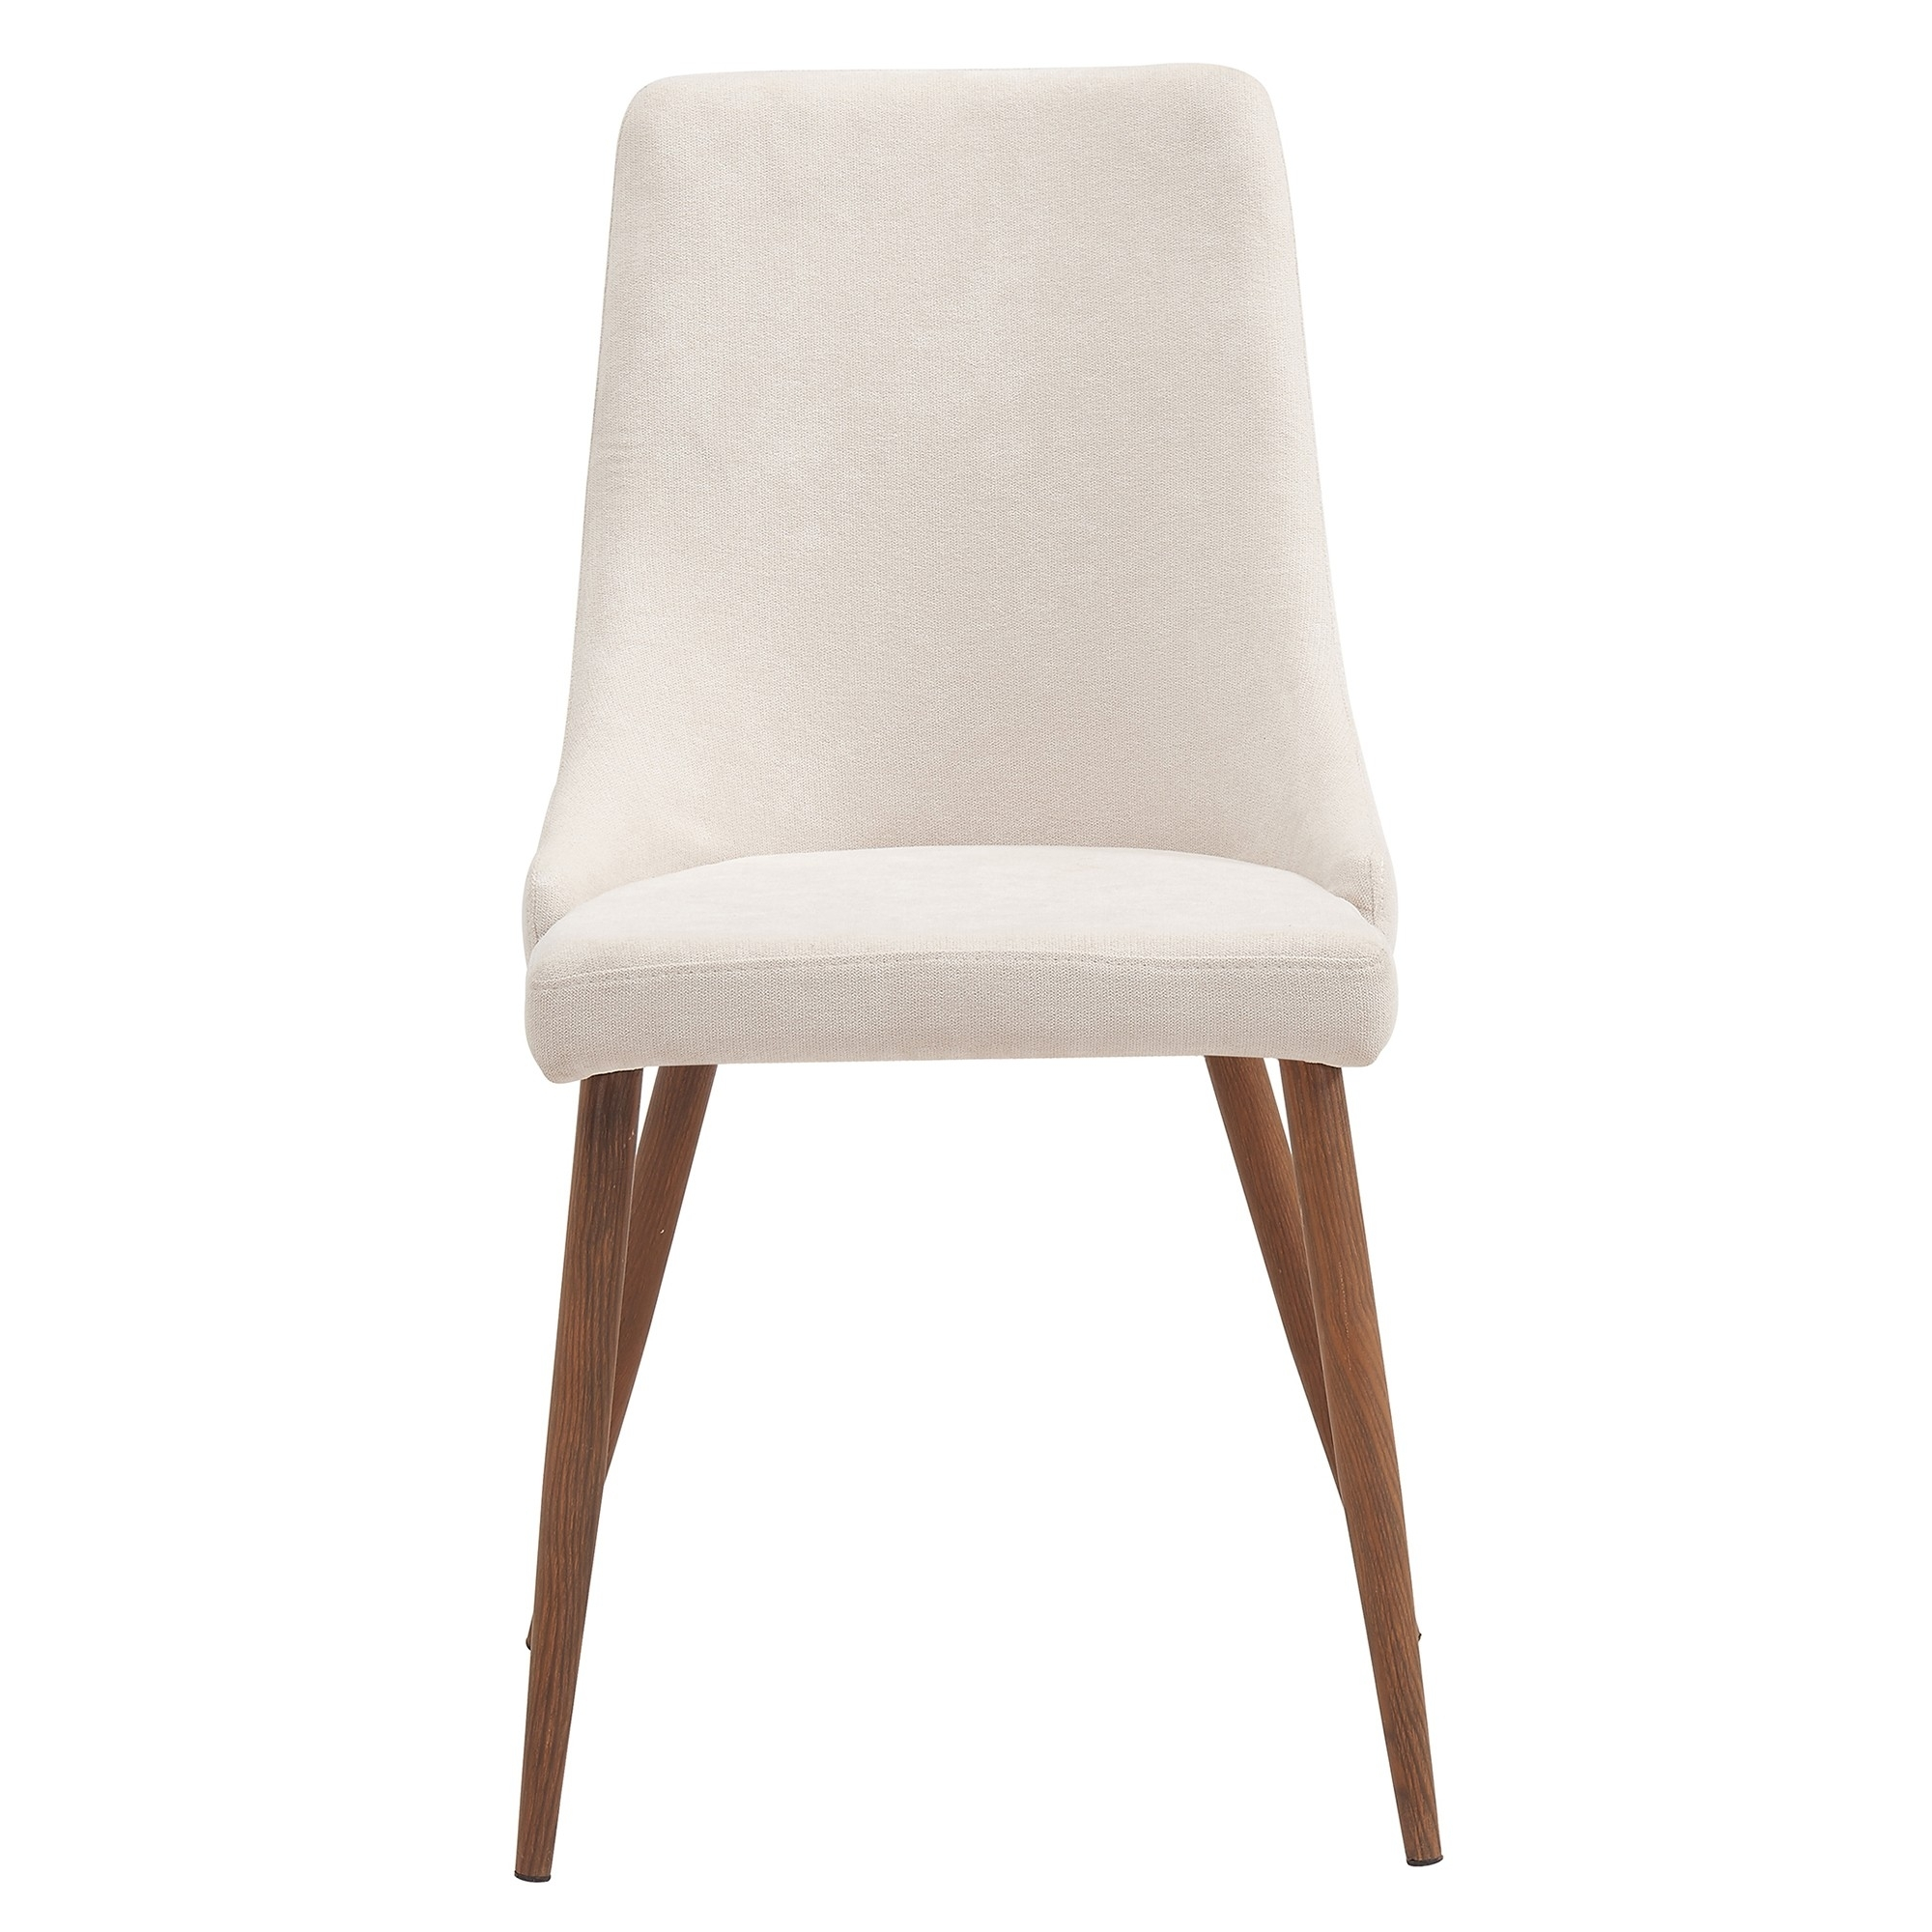 Famous Cora Side Chair In Beige Regarding Cora Side Chairs (View 10 of 20)